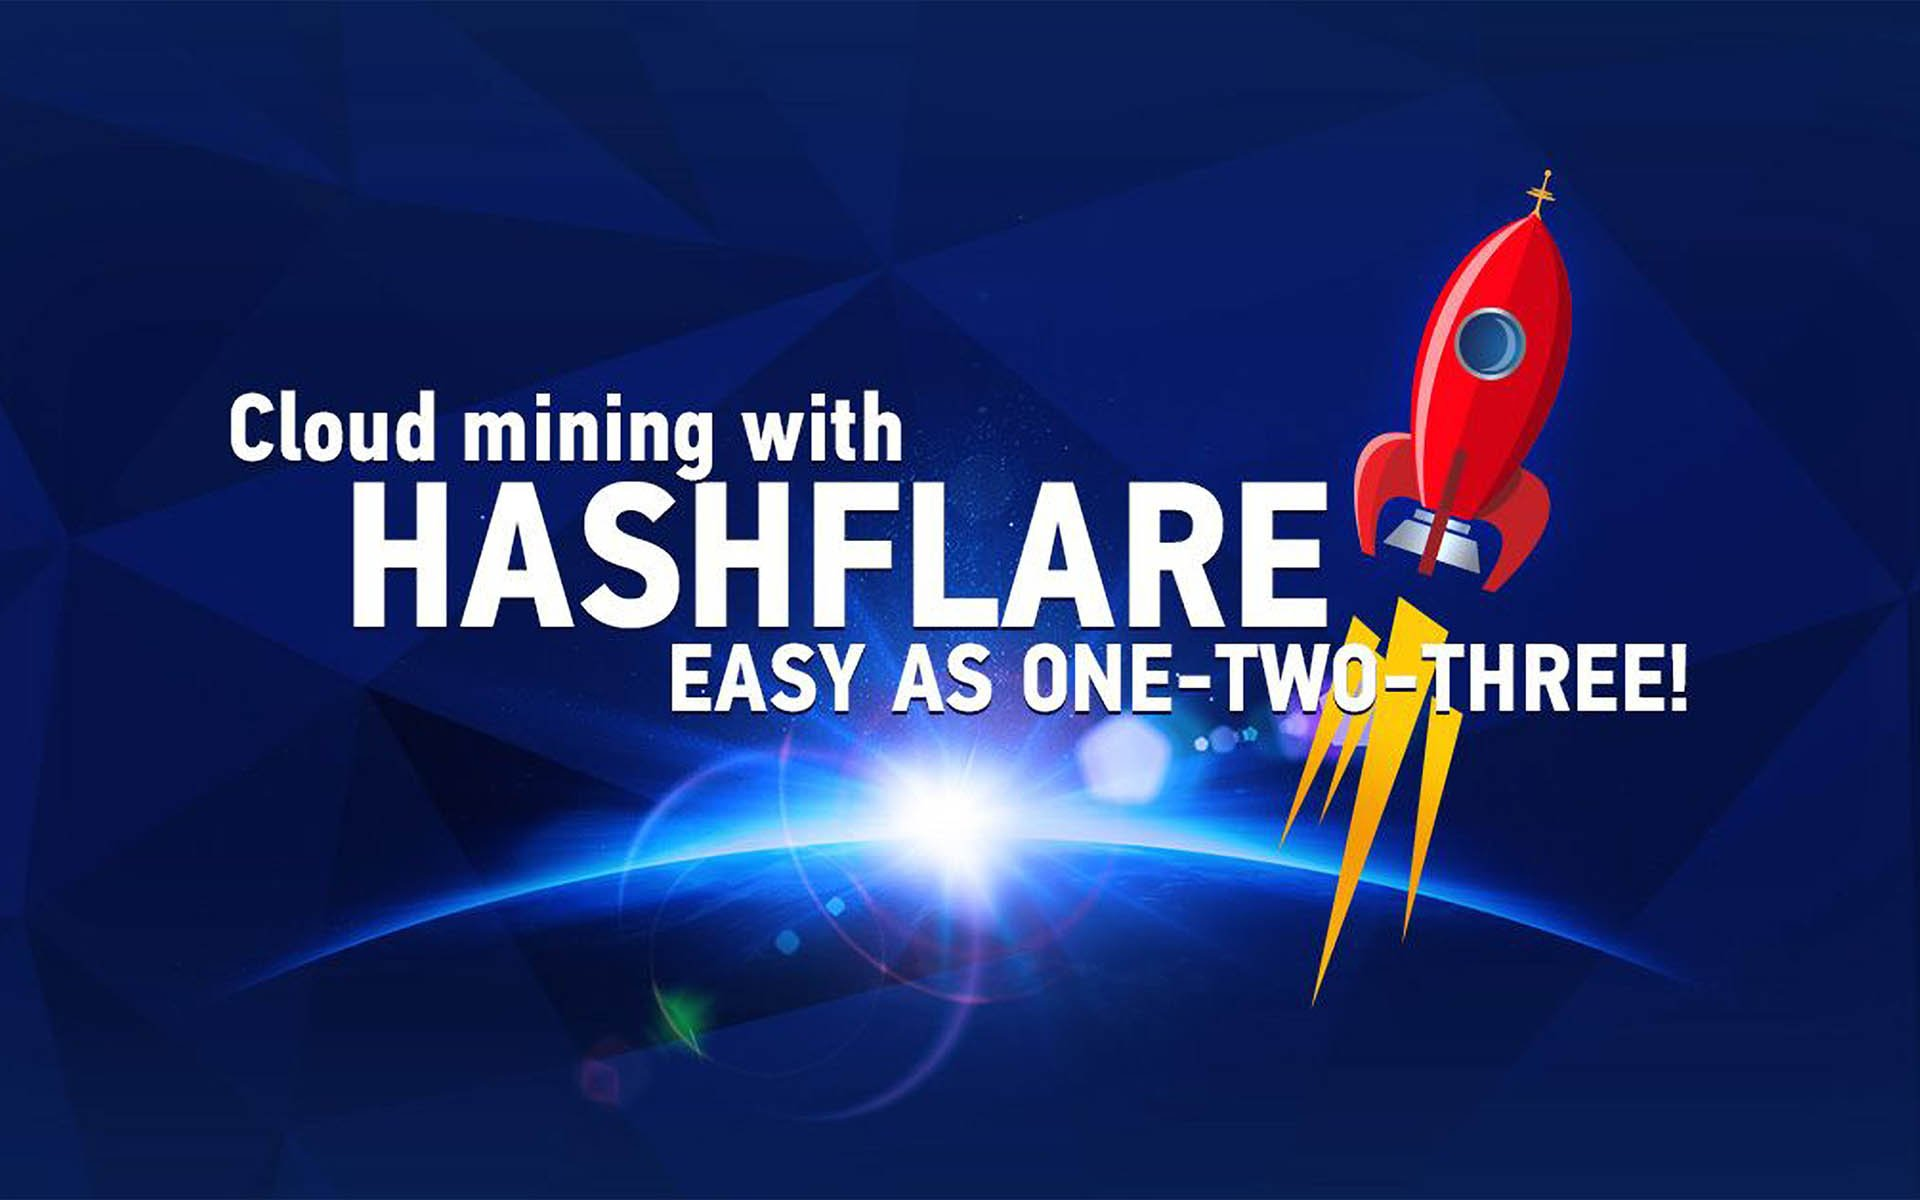 Leading Cloud Mining Company HashFlare Offering New Discount Until September 17, 2017